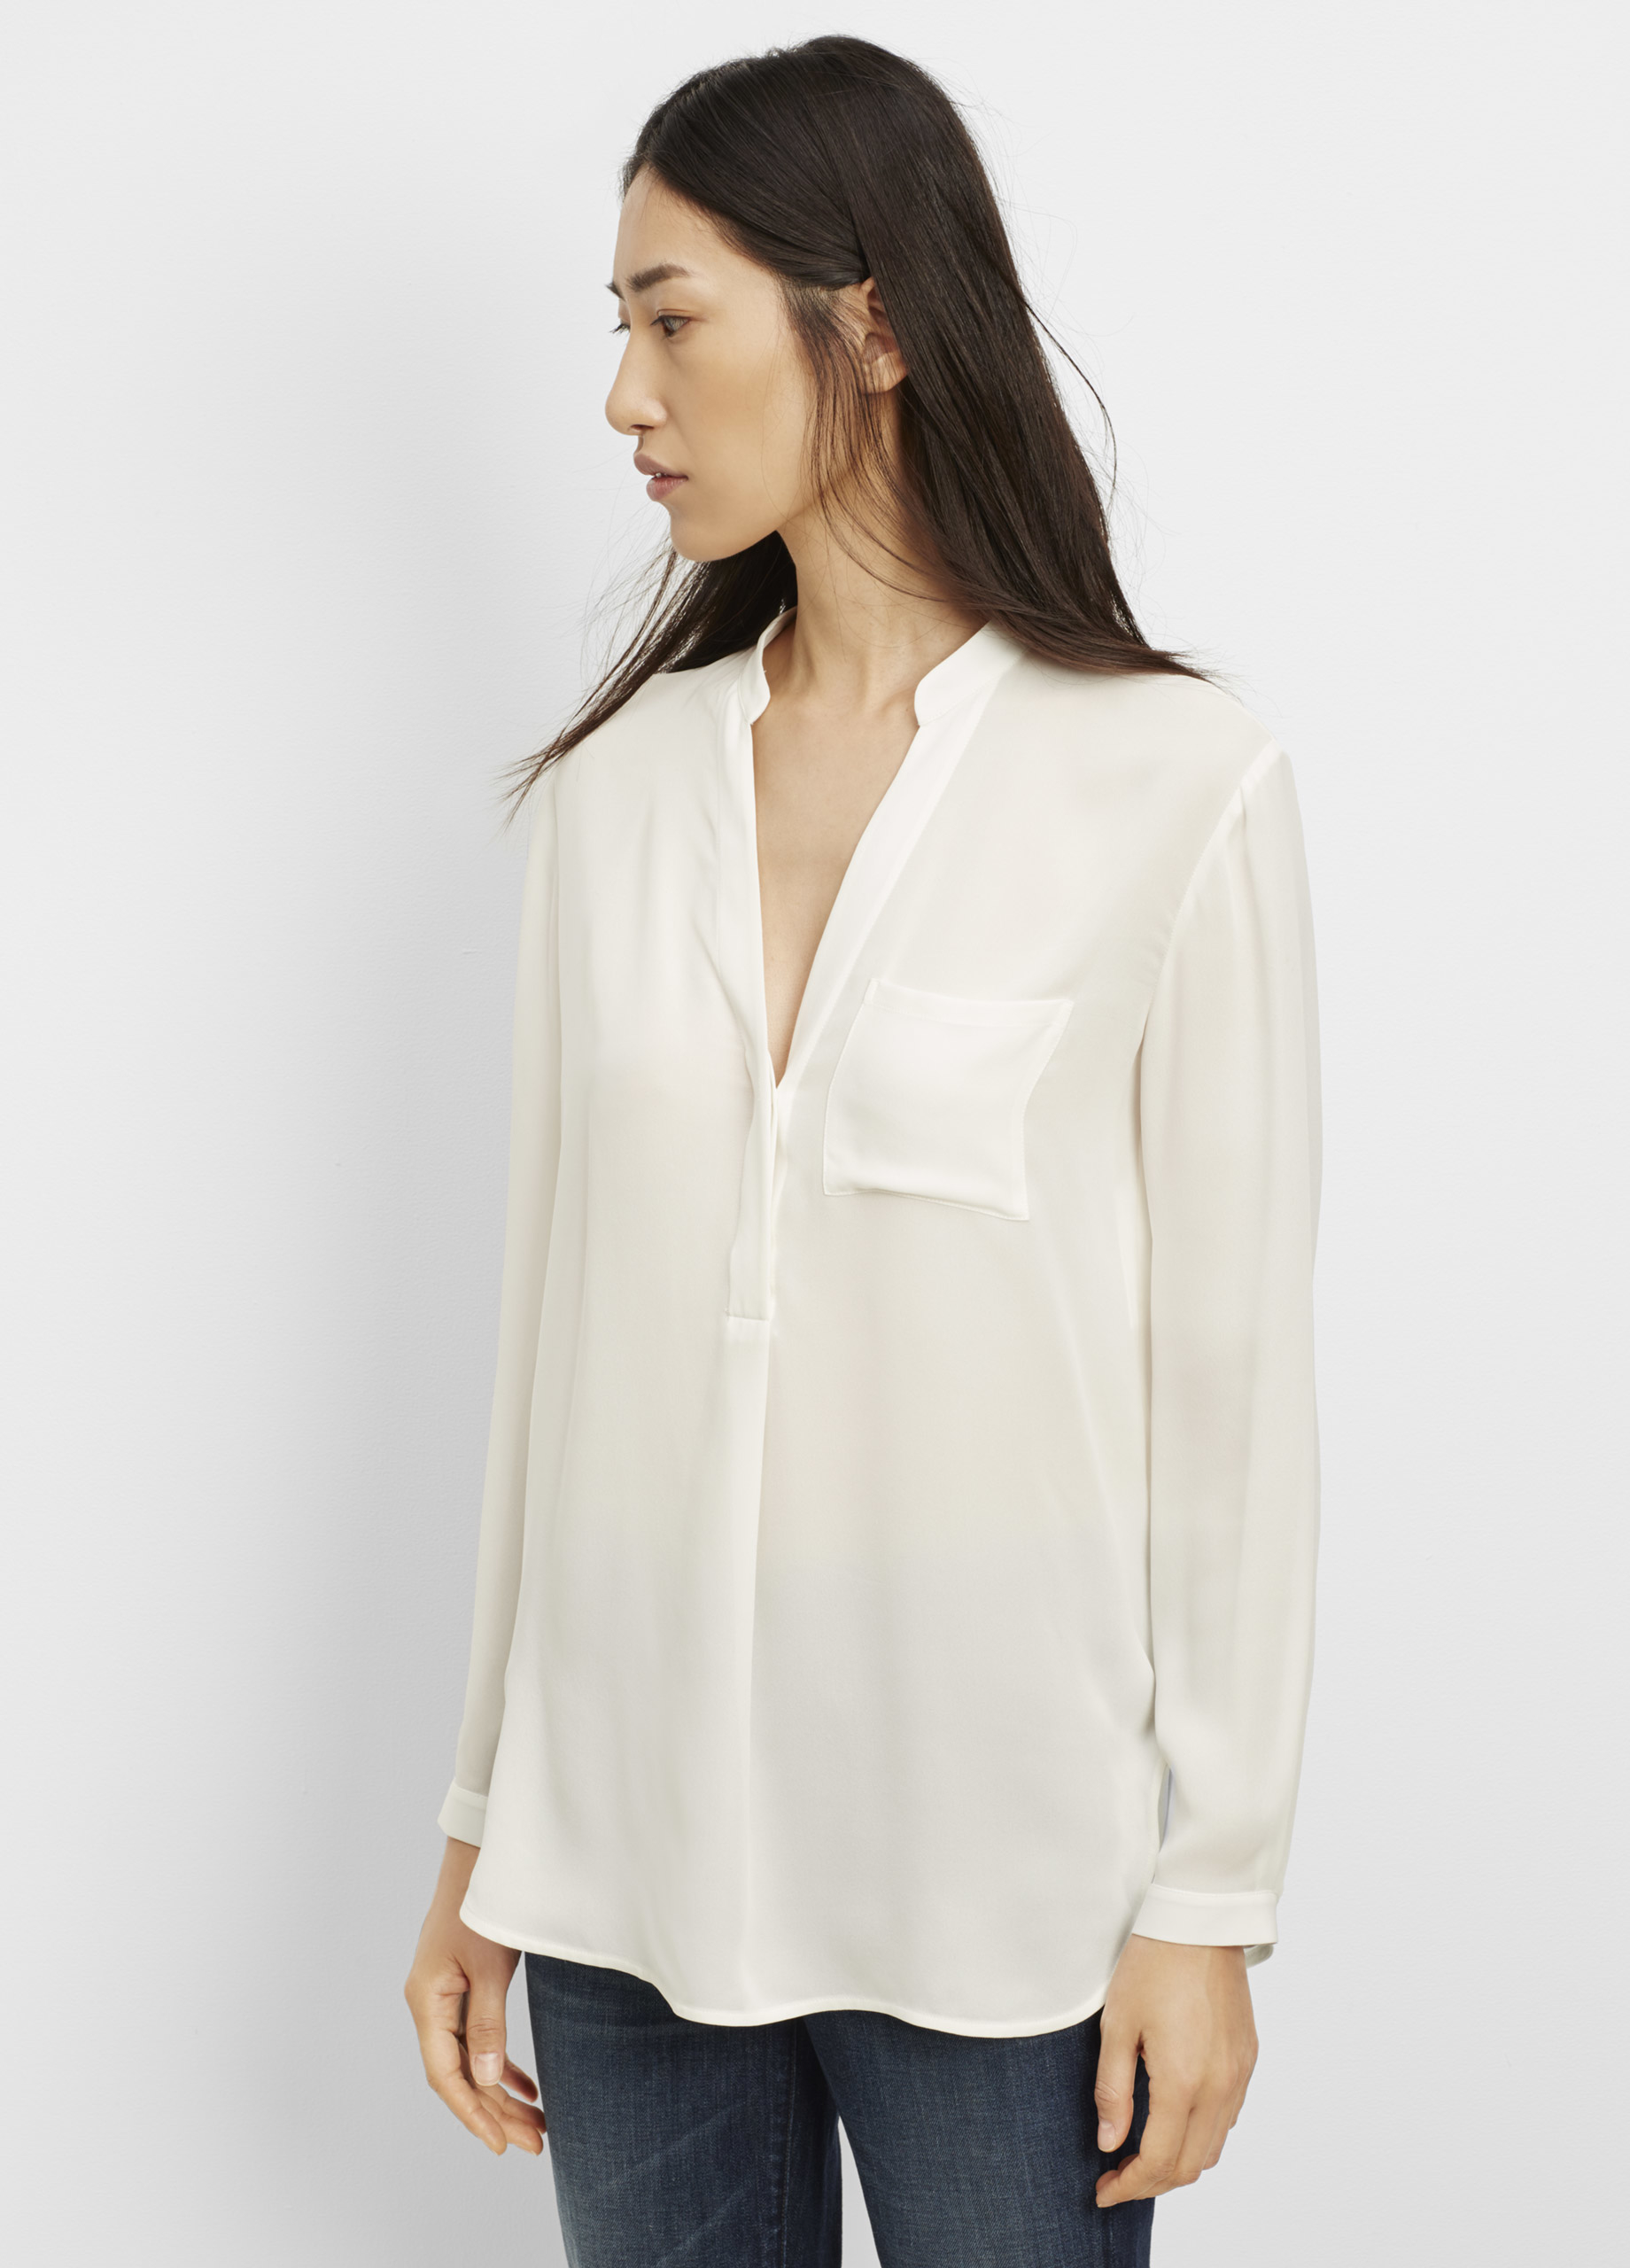 Petite Shirts And Blouses